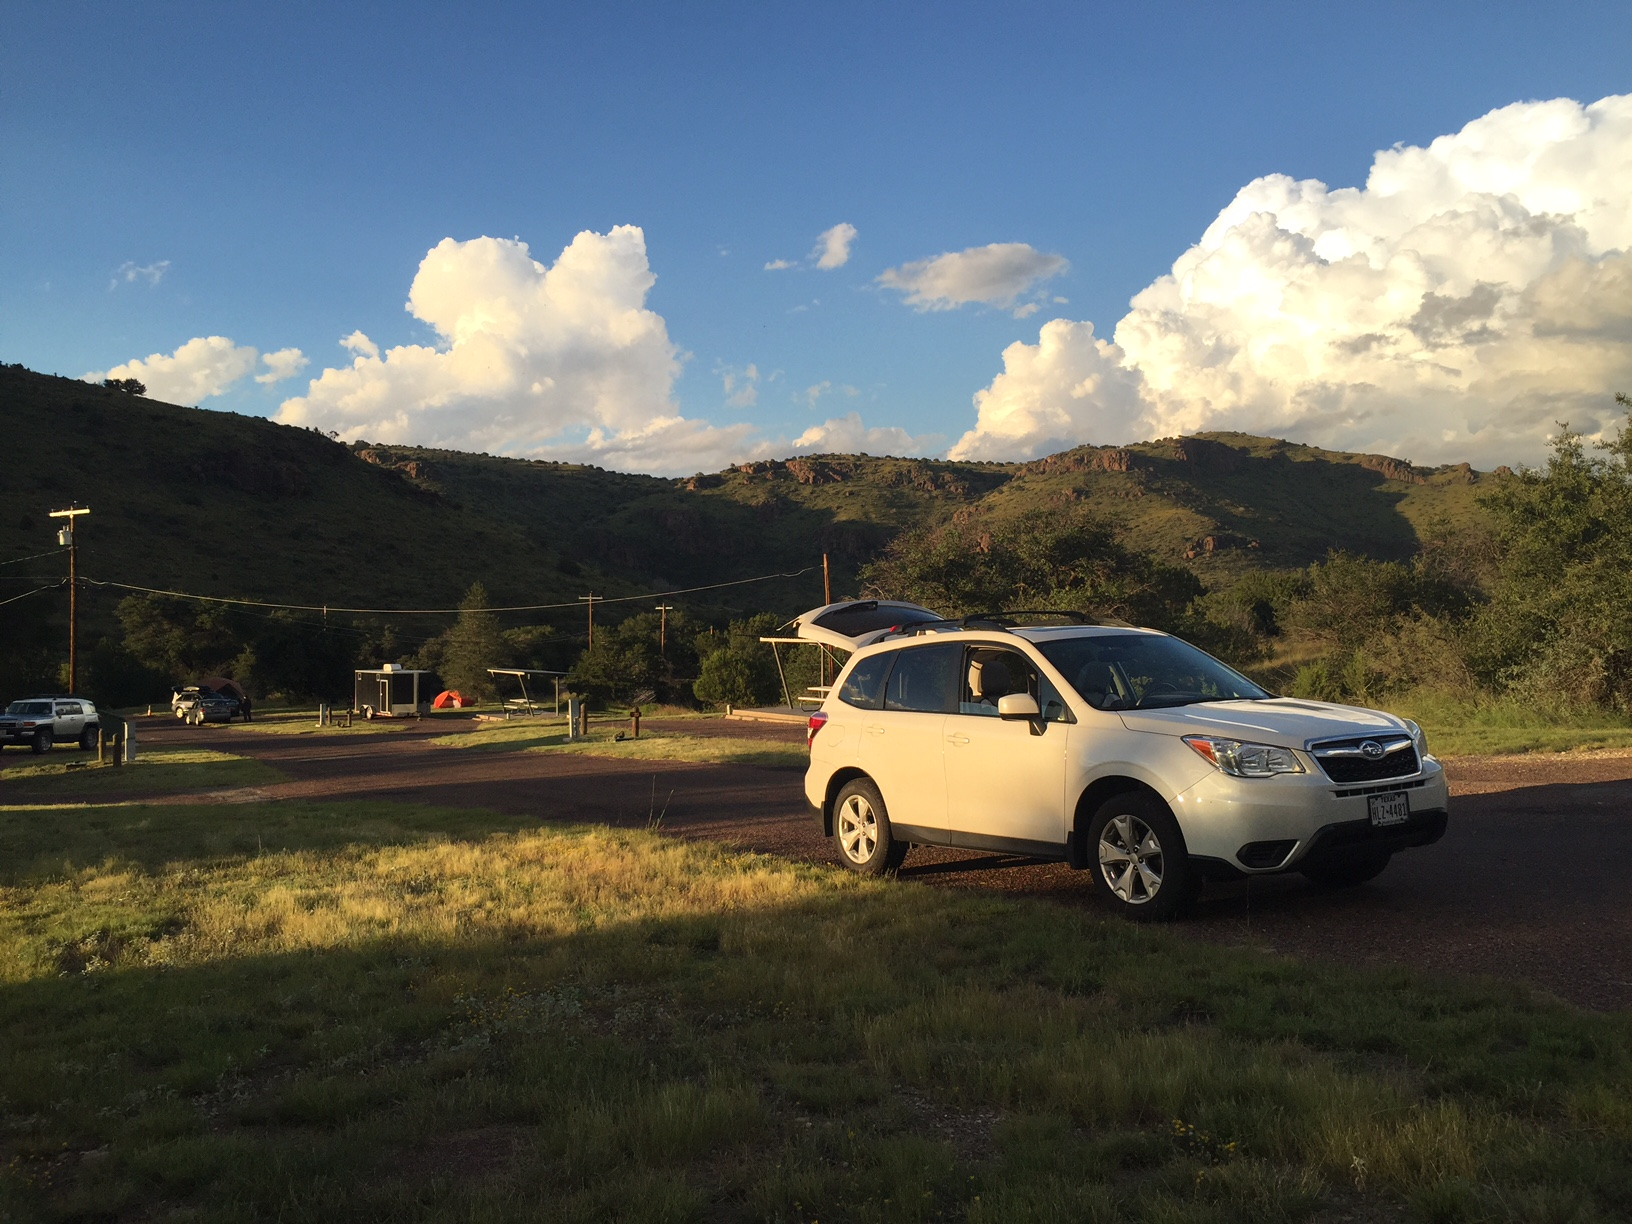 2016 Subaru Forester advertising in real life...